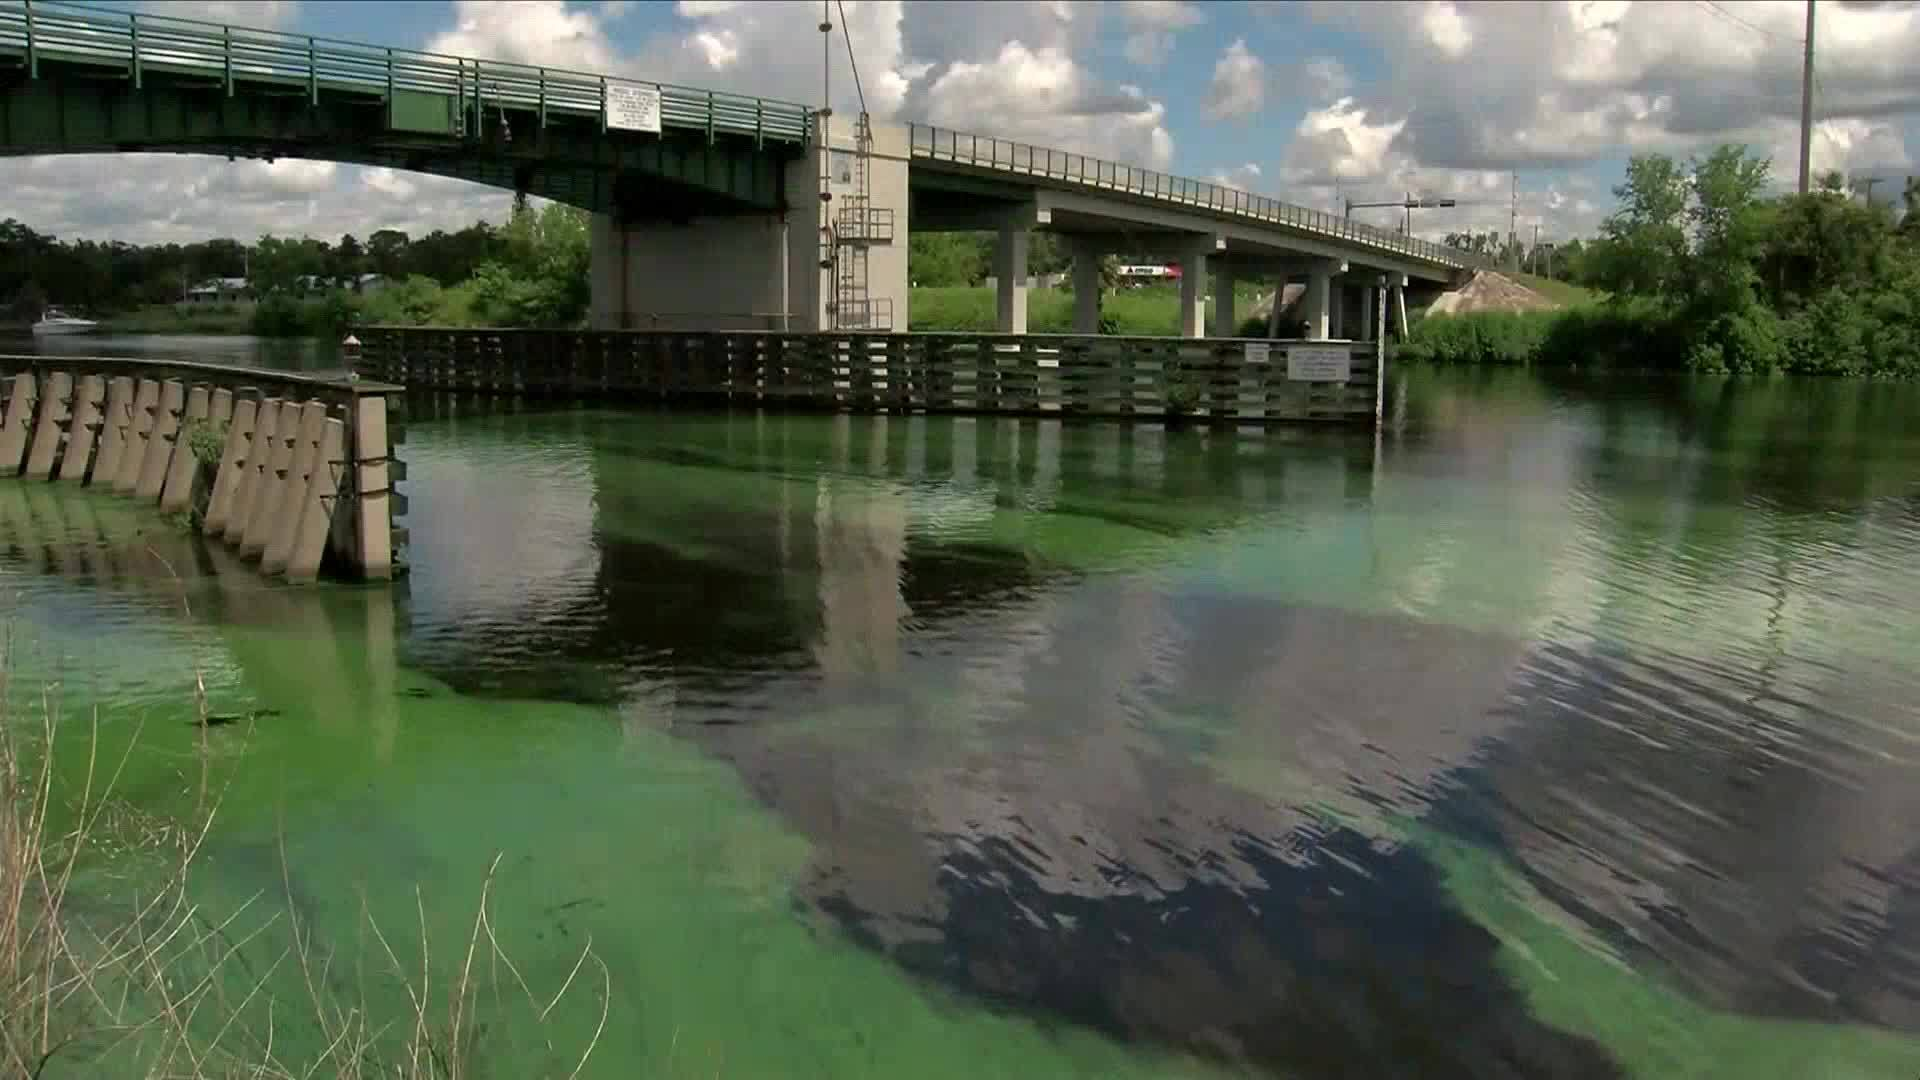 Green algae floating down Caloosahatchee River, concerning residents